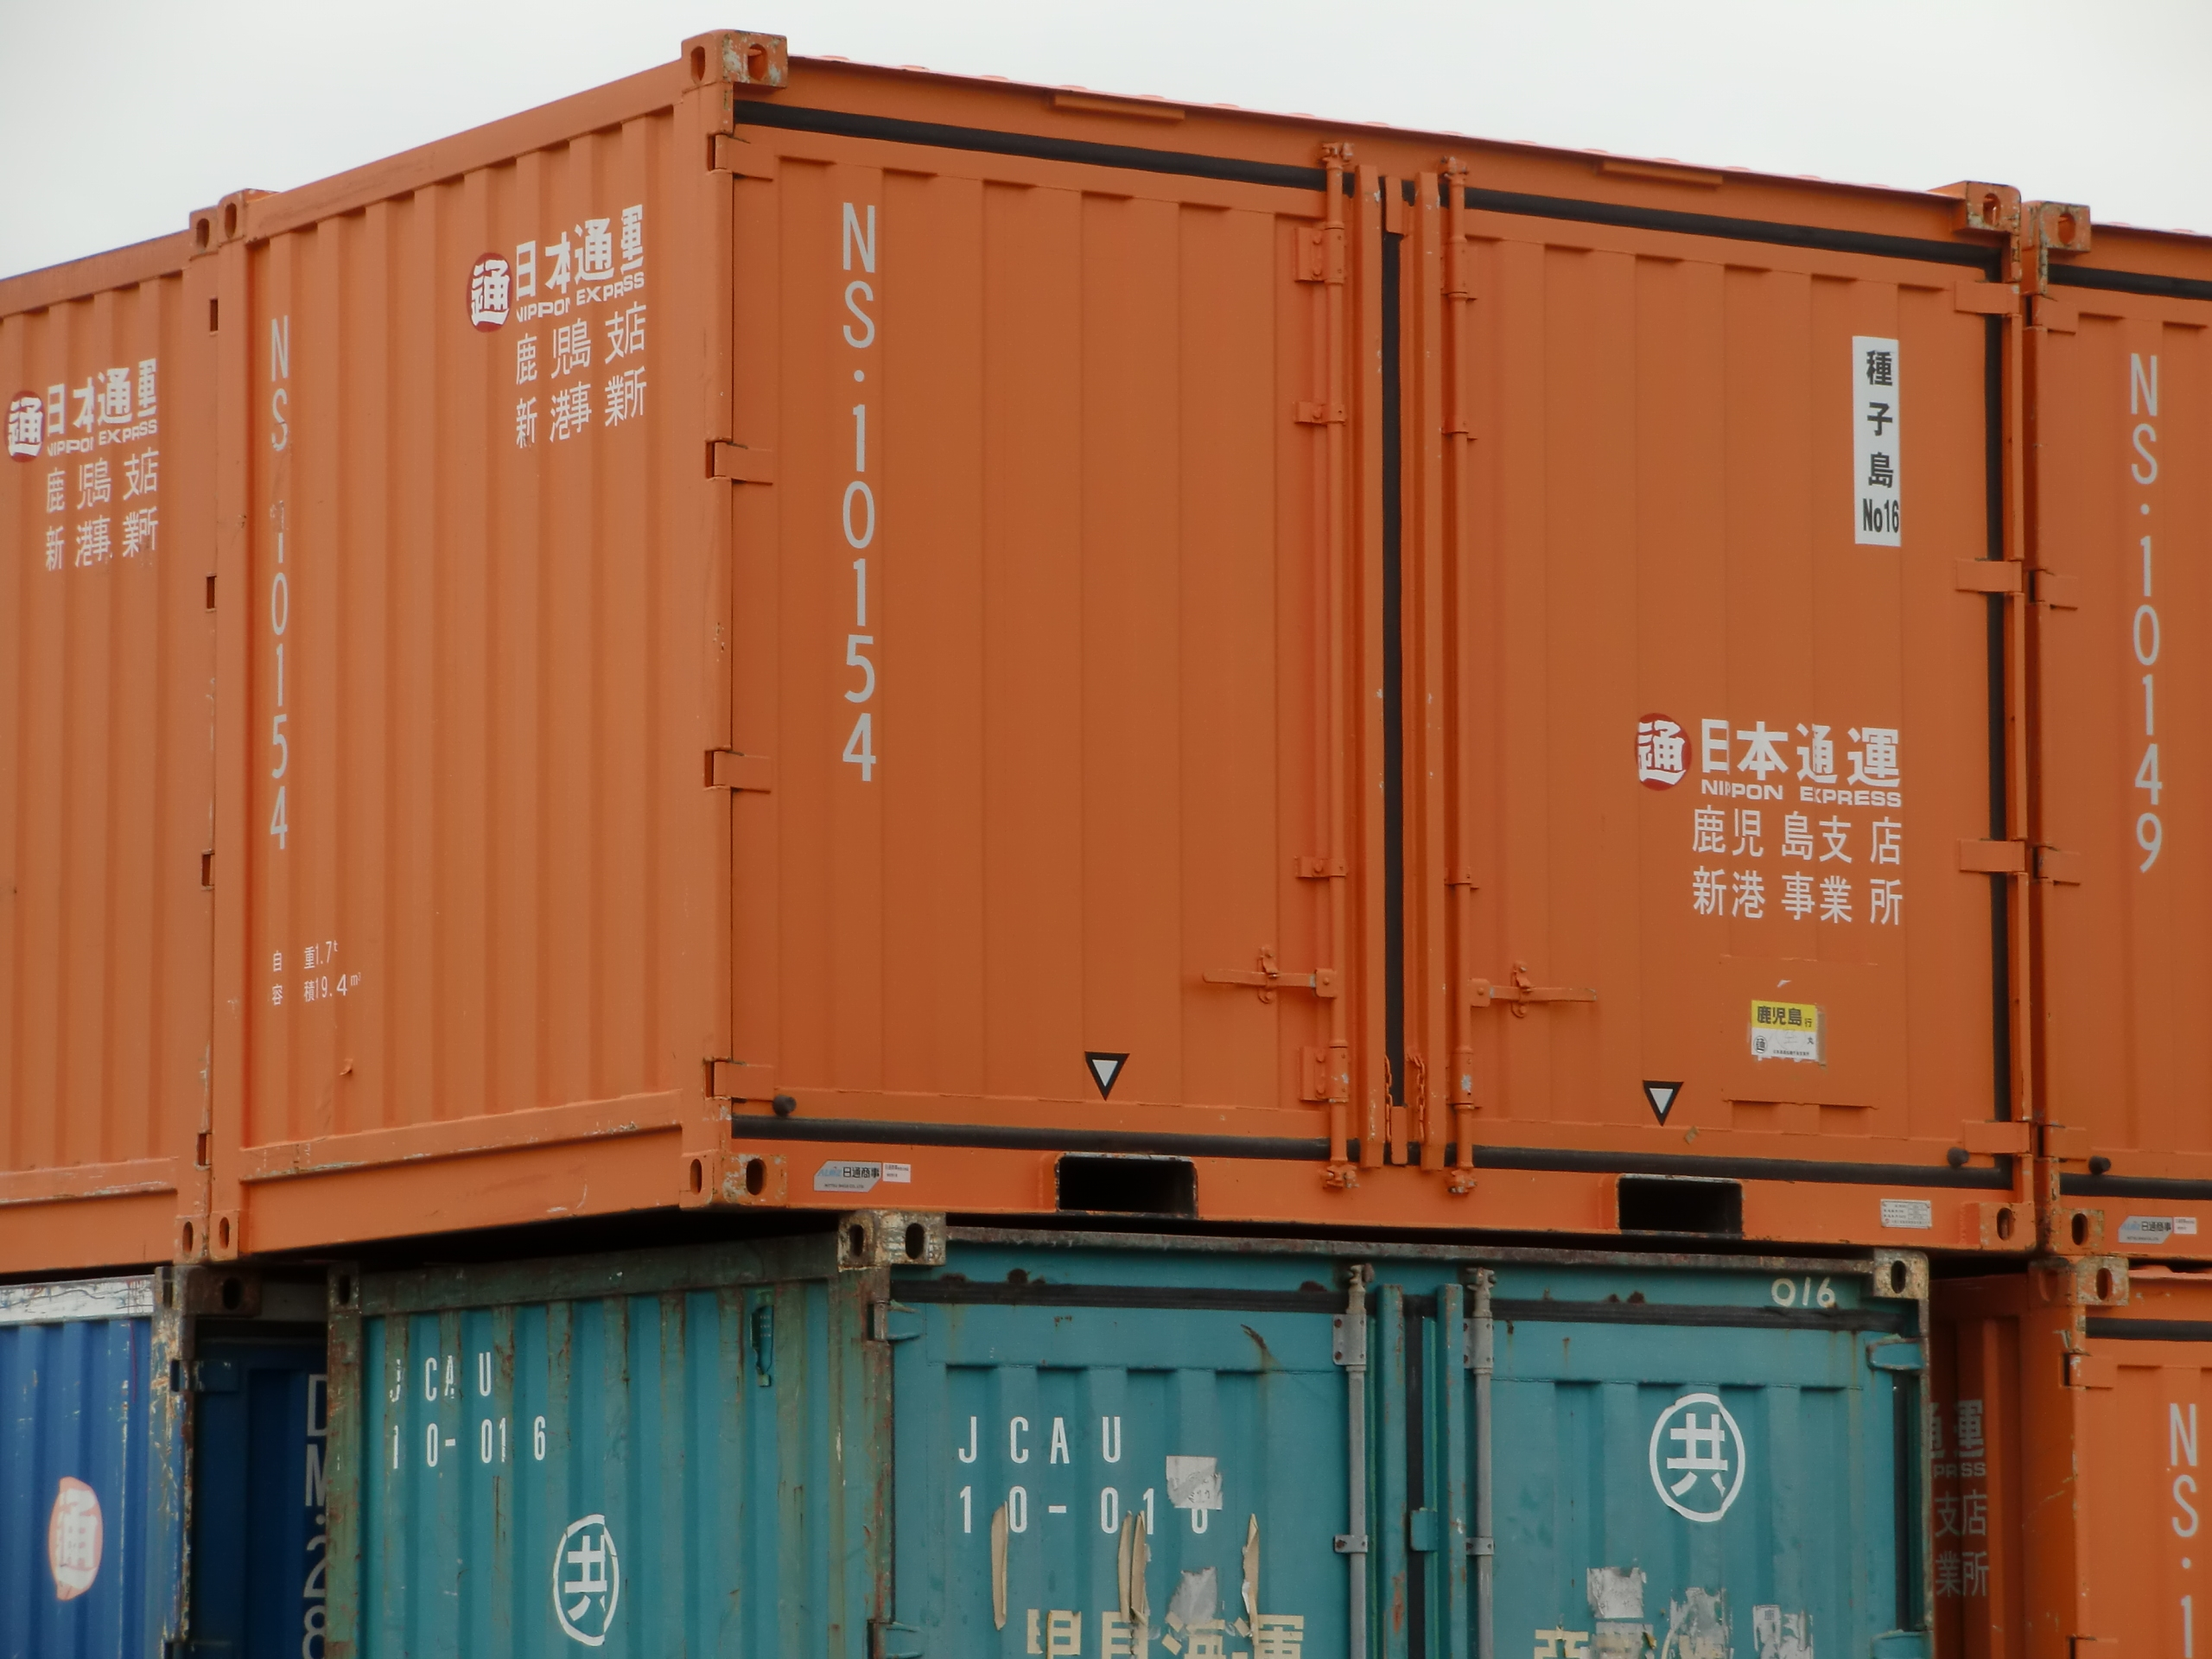 https://upload.wikimedia.org/wikipedia/commons/0/0f/Container_%EF%BC%9D%E3%80%90_12ft_%E3%80%91_NS-10154_%E3%80%90_Marine_container_only_for_Japan_Domestic_%E3%80%91.jpg